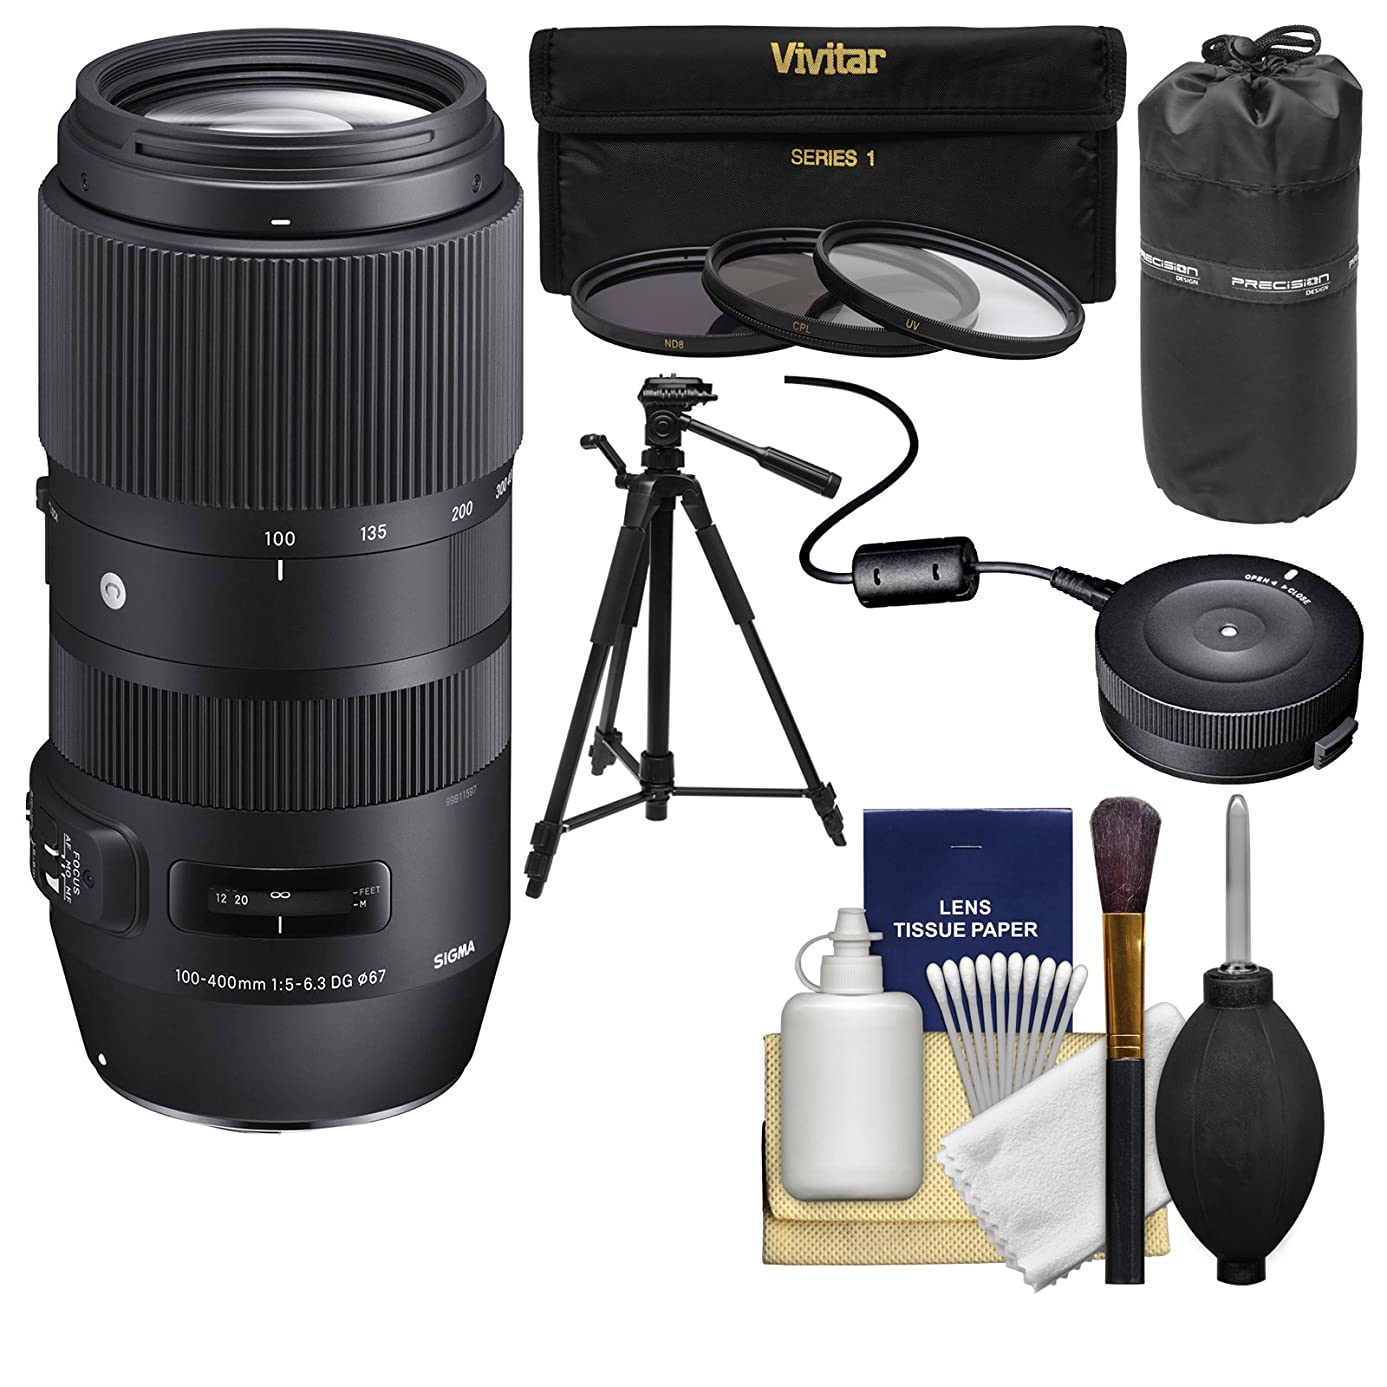 Sigma 100-400mm f/5.0-6.3 Contemporary DG OS HSM Zoom Lens with USB Dock + 3 UV/CPL/ND8 Filters + Tripod + Pouch + Kit for Canon EOS DSLR Cameras